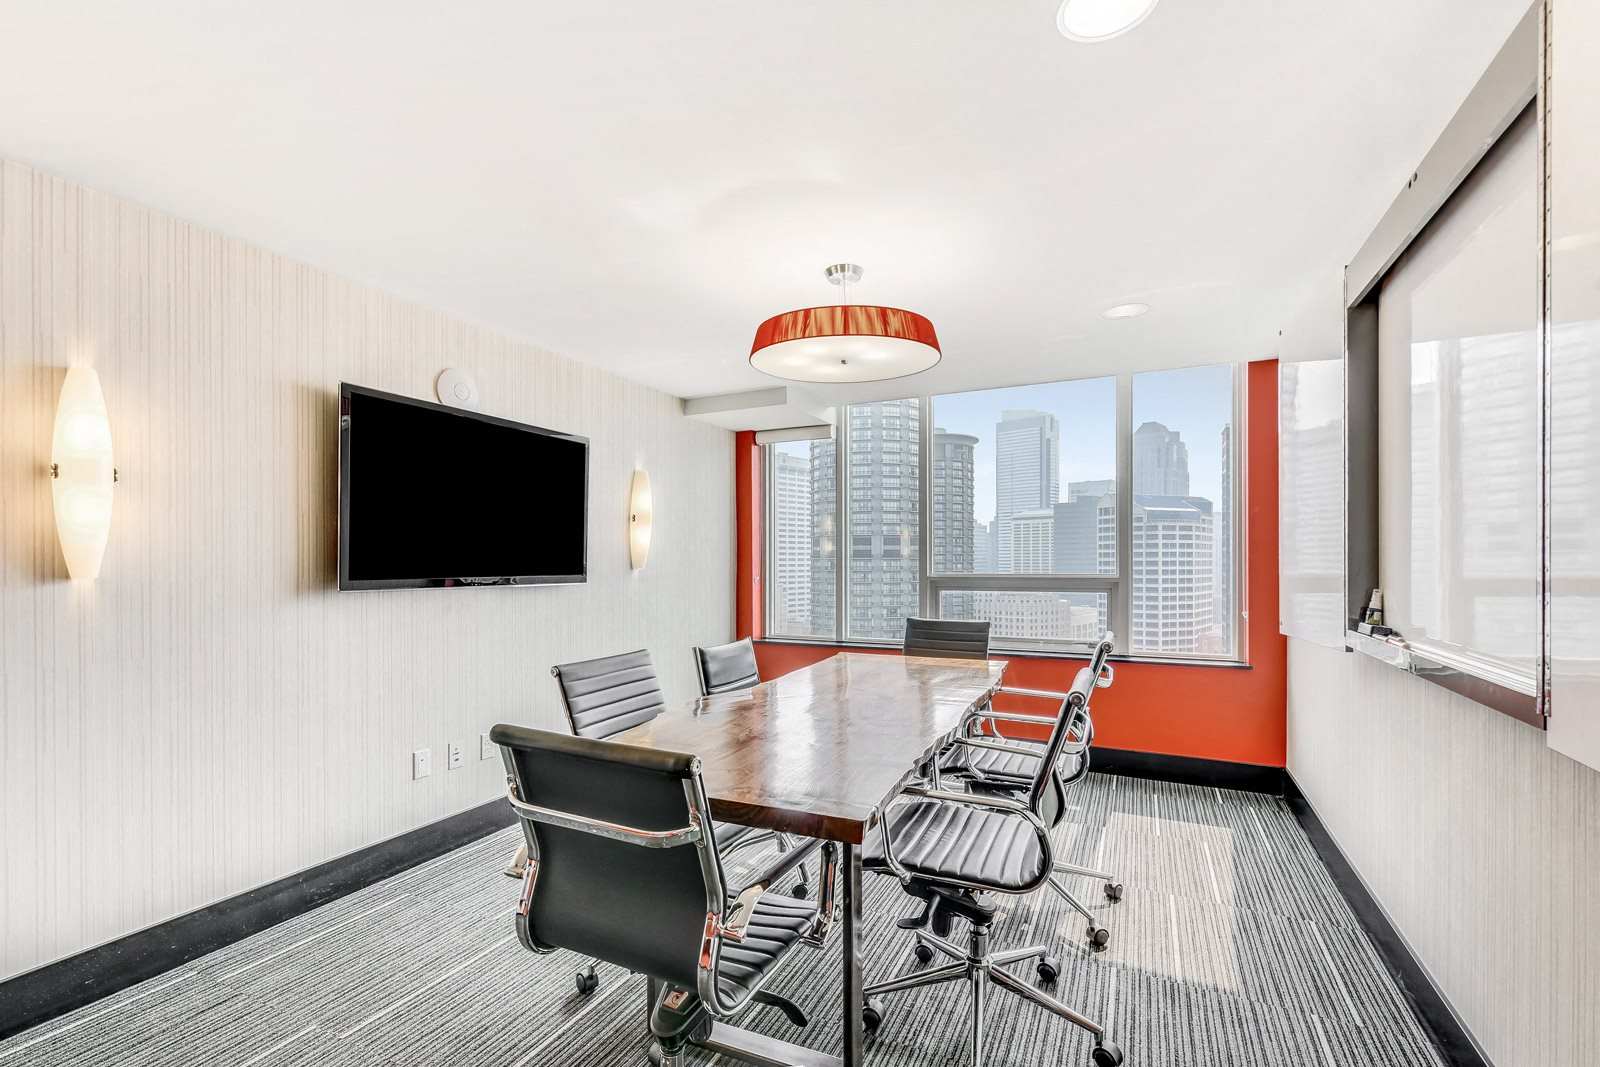 Conference Room and Business Center at The Martin, 2105 5th Ave, WA